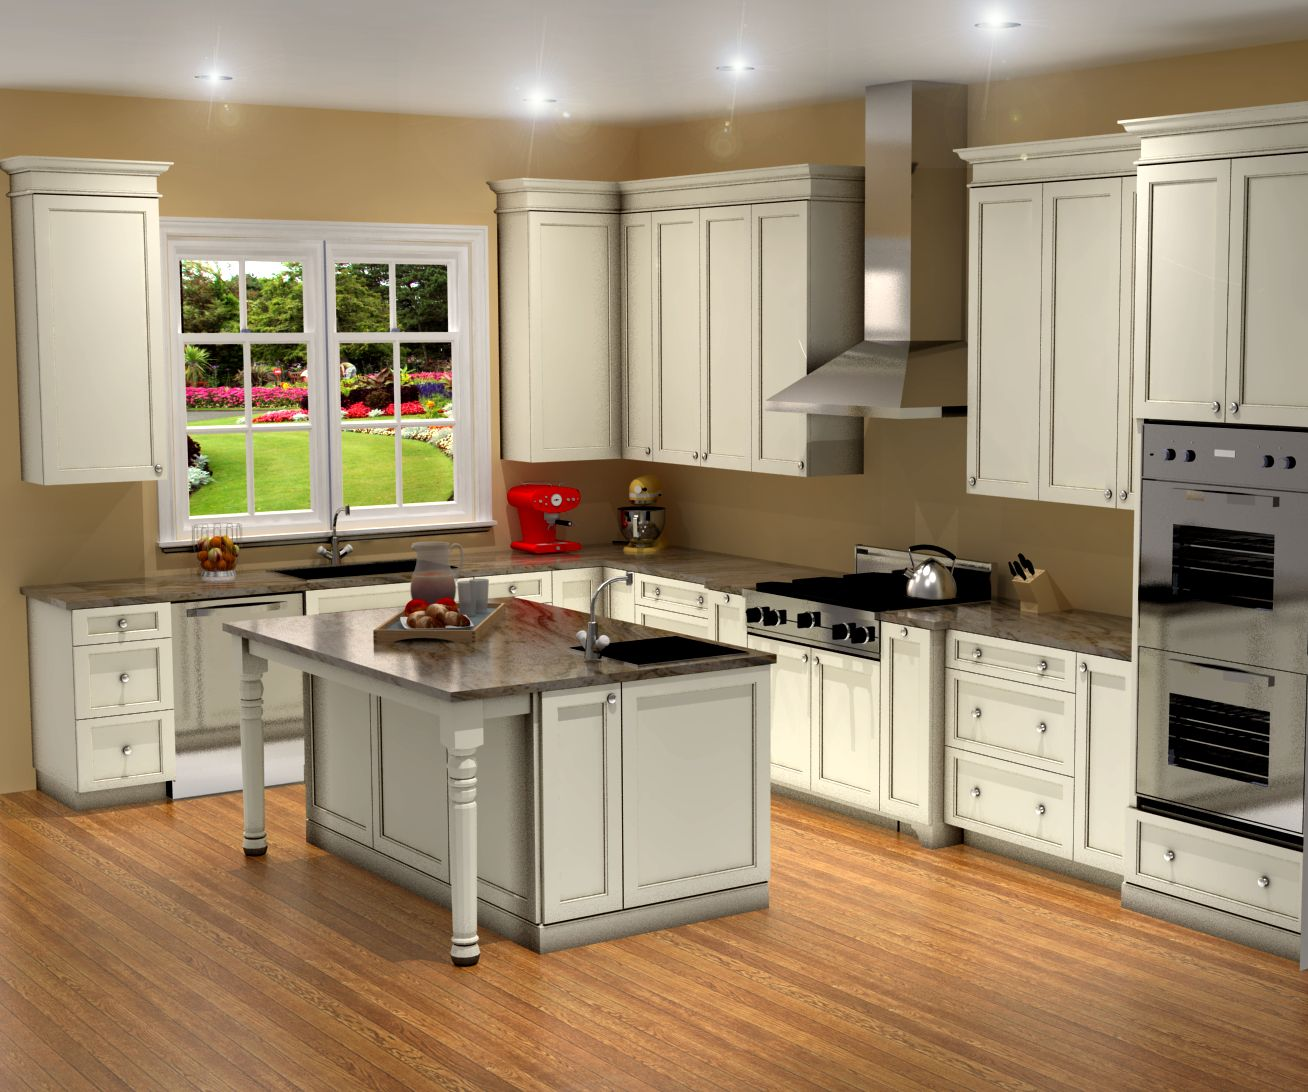 Traditional white kitchen design 3d rendering nick for Pictures of kitchen plans